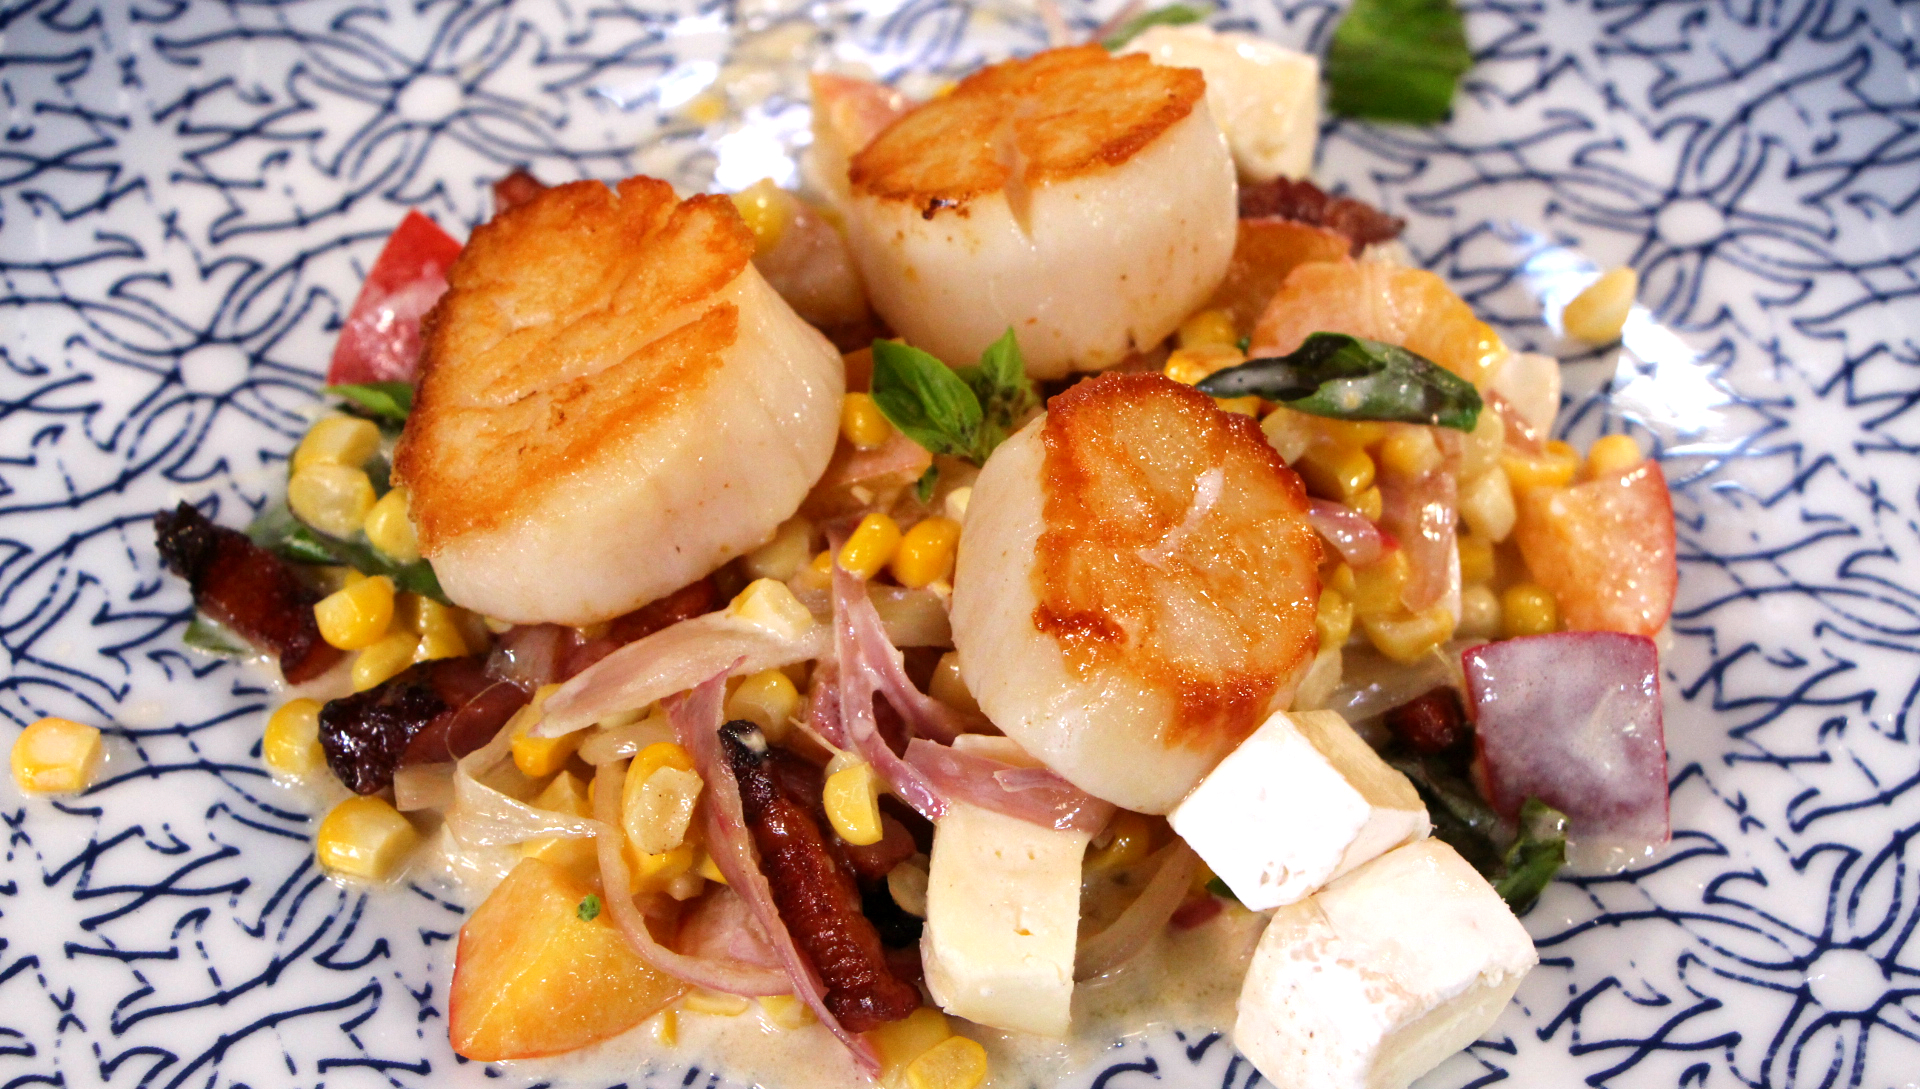 Seared scallops with smoked bacon ragout - Cityline